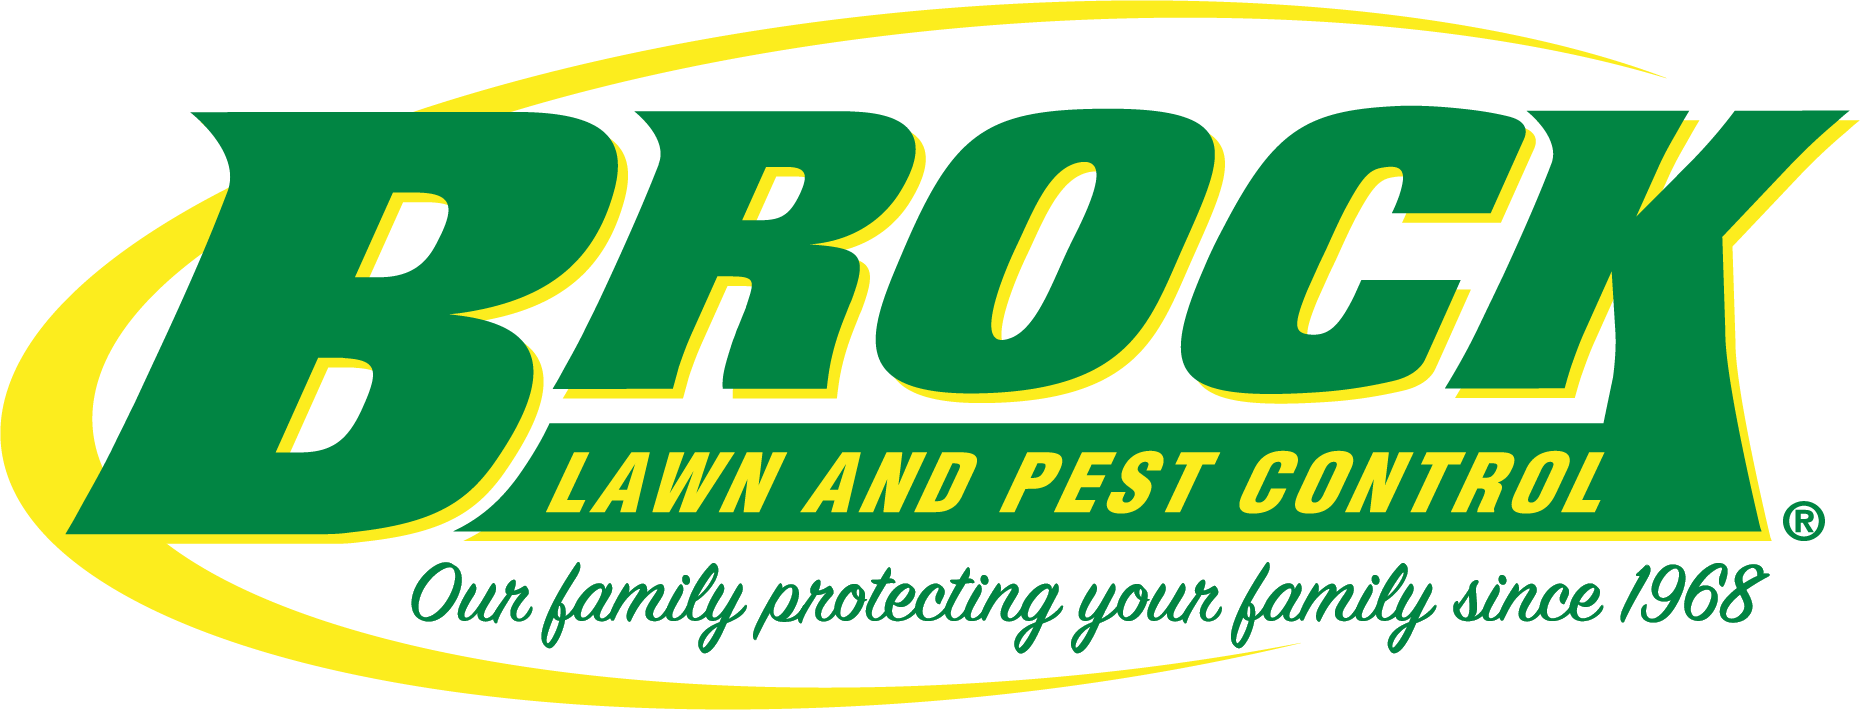 Brock Lawn and Pest Control, Inc